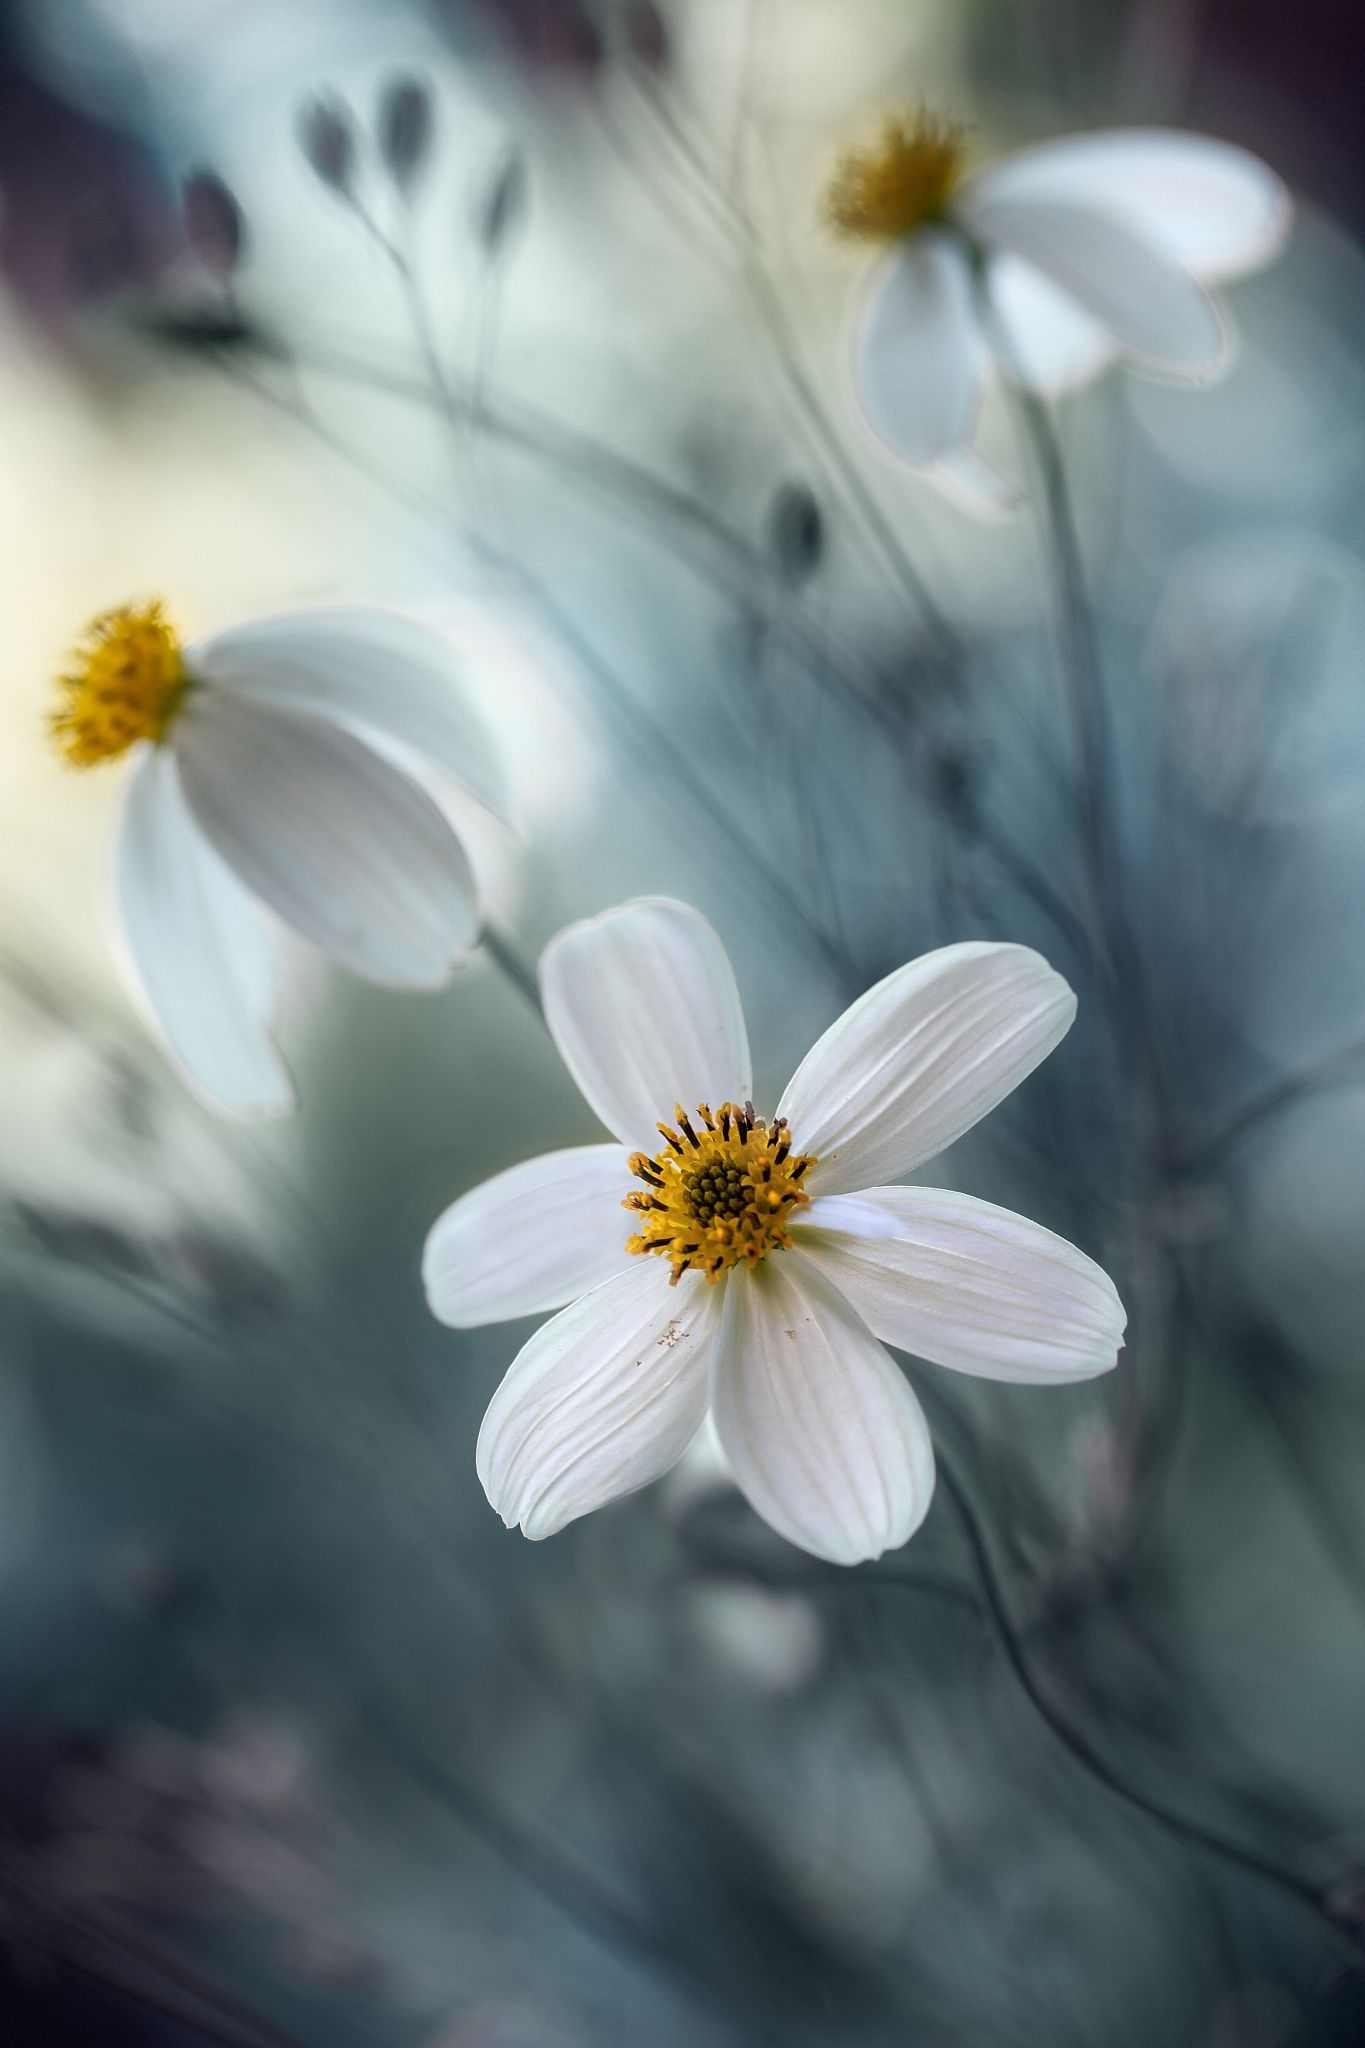 Bidens by Mandy Disher on 500px